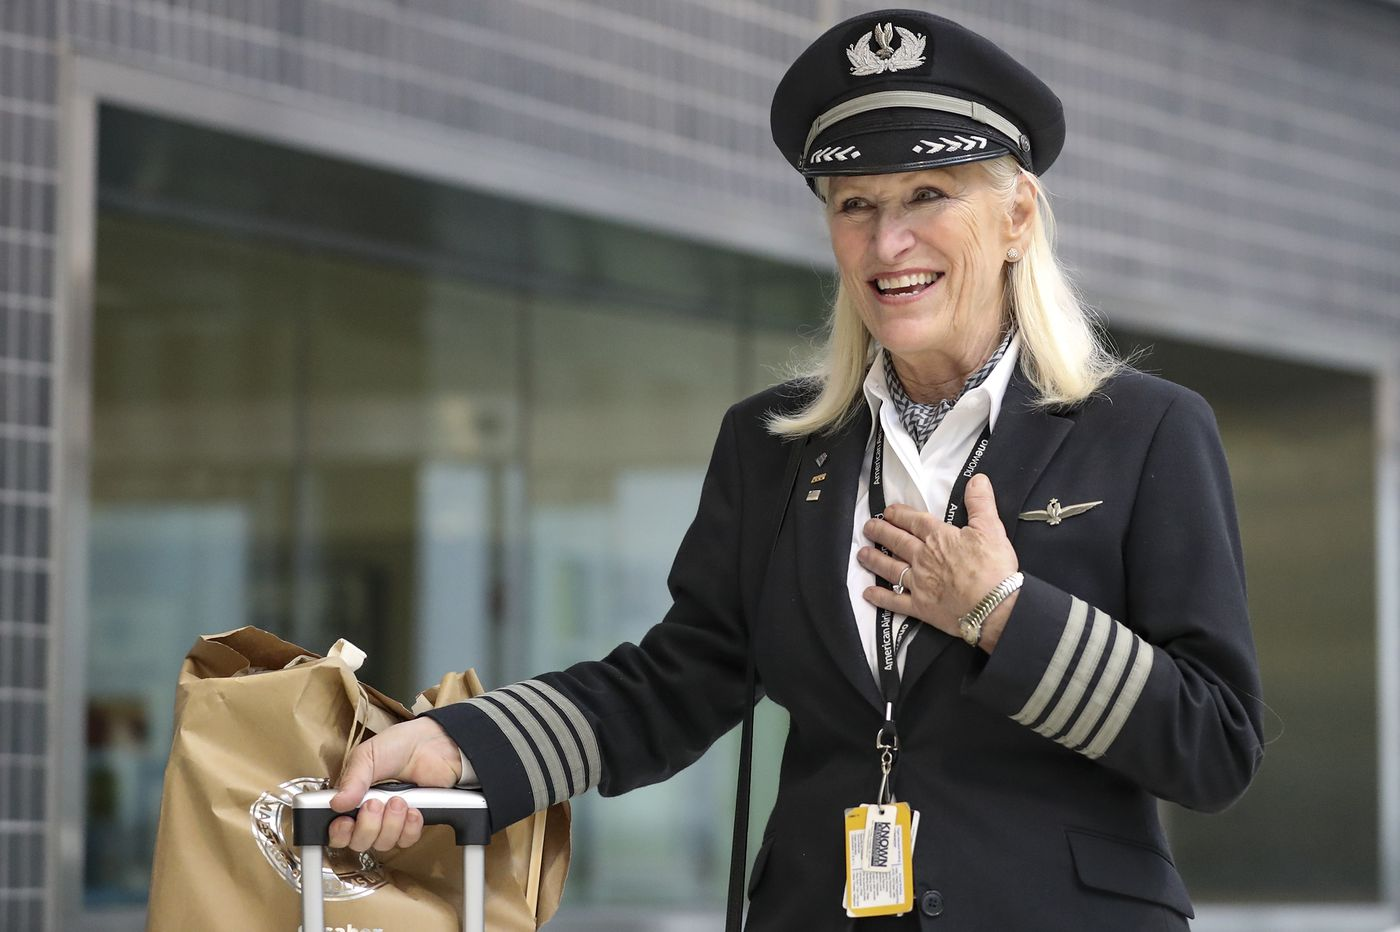 Retiring Woman Pilot With 39-Year Career Wouldn't Take 'No' for an Answer